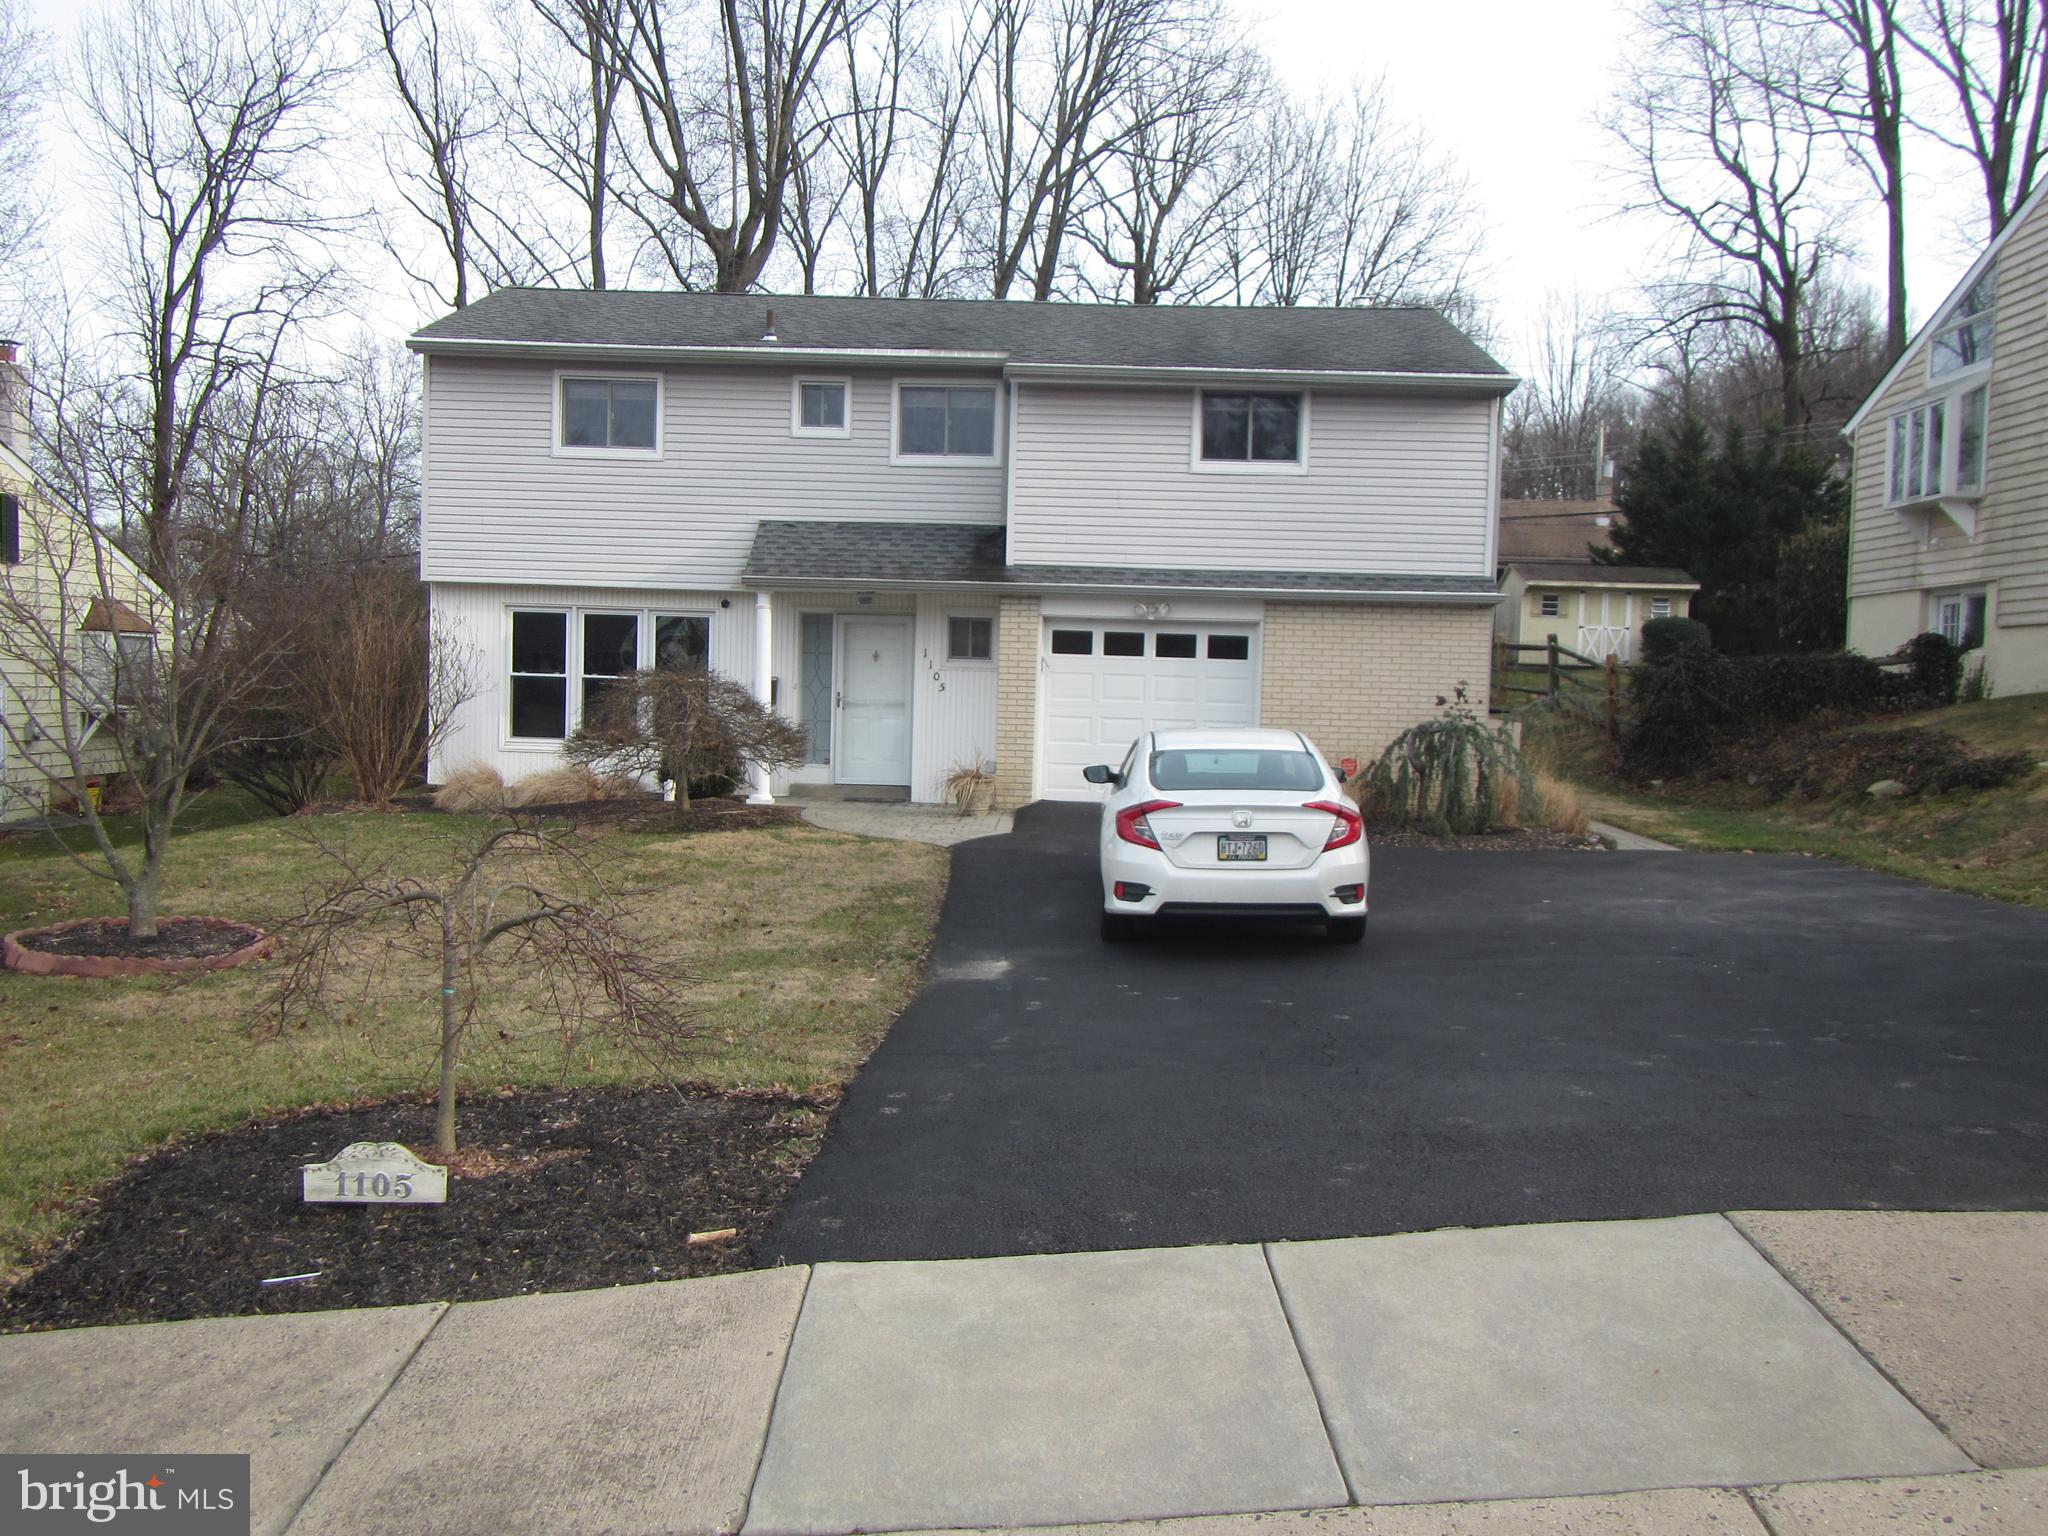 1105 DIVISION AVENUE, WILLOW GROVE, PA 19090